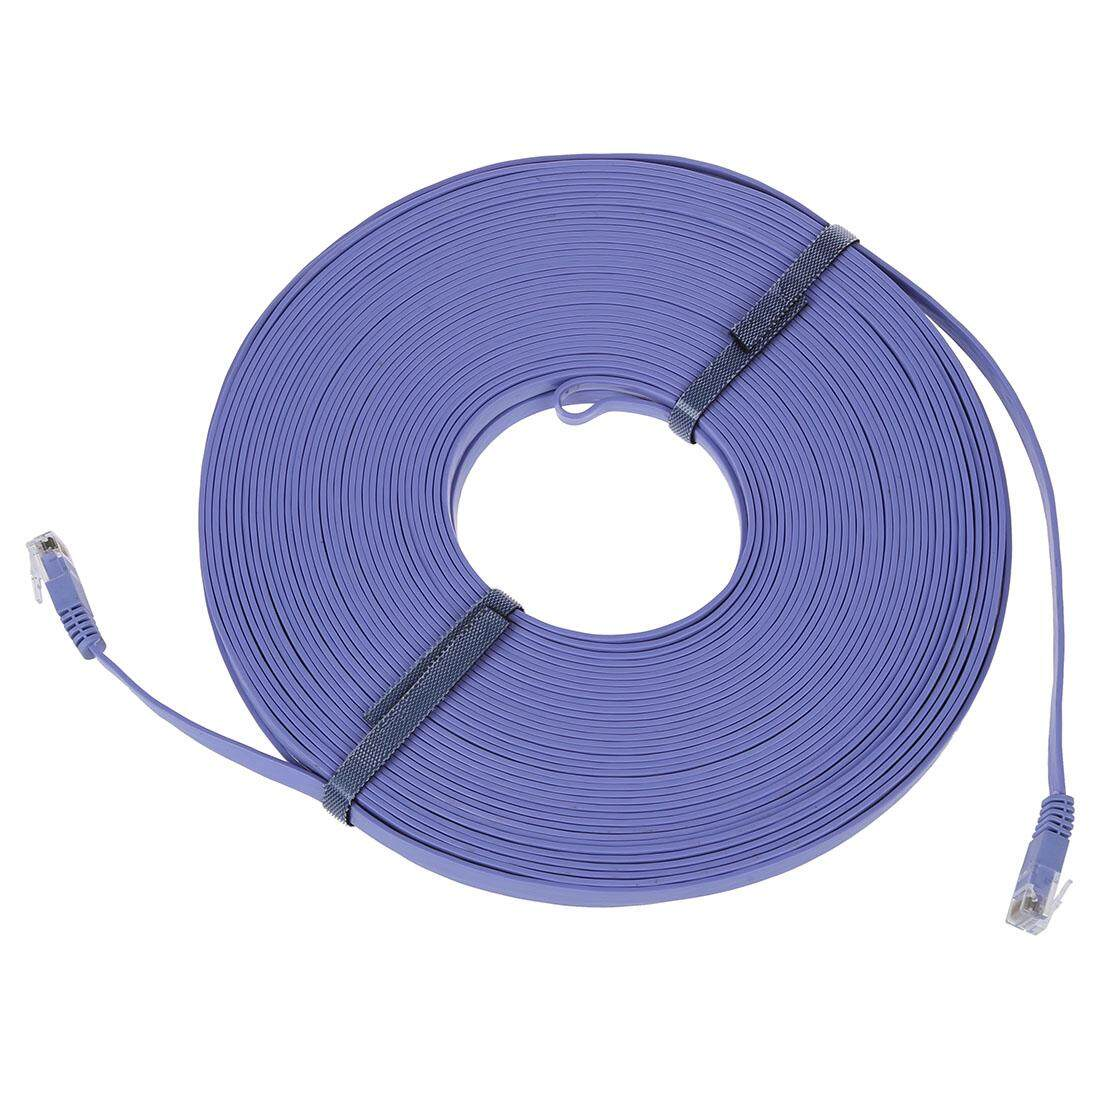 98FT 30M CAT6 CAT 6 Flat UTP Ethernet Network Cable RJ45 Patch LAN Cord Blue - intl